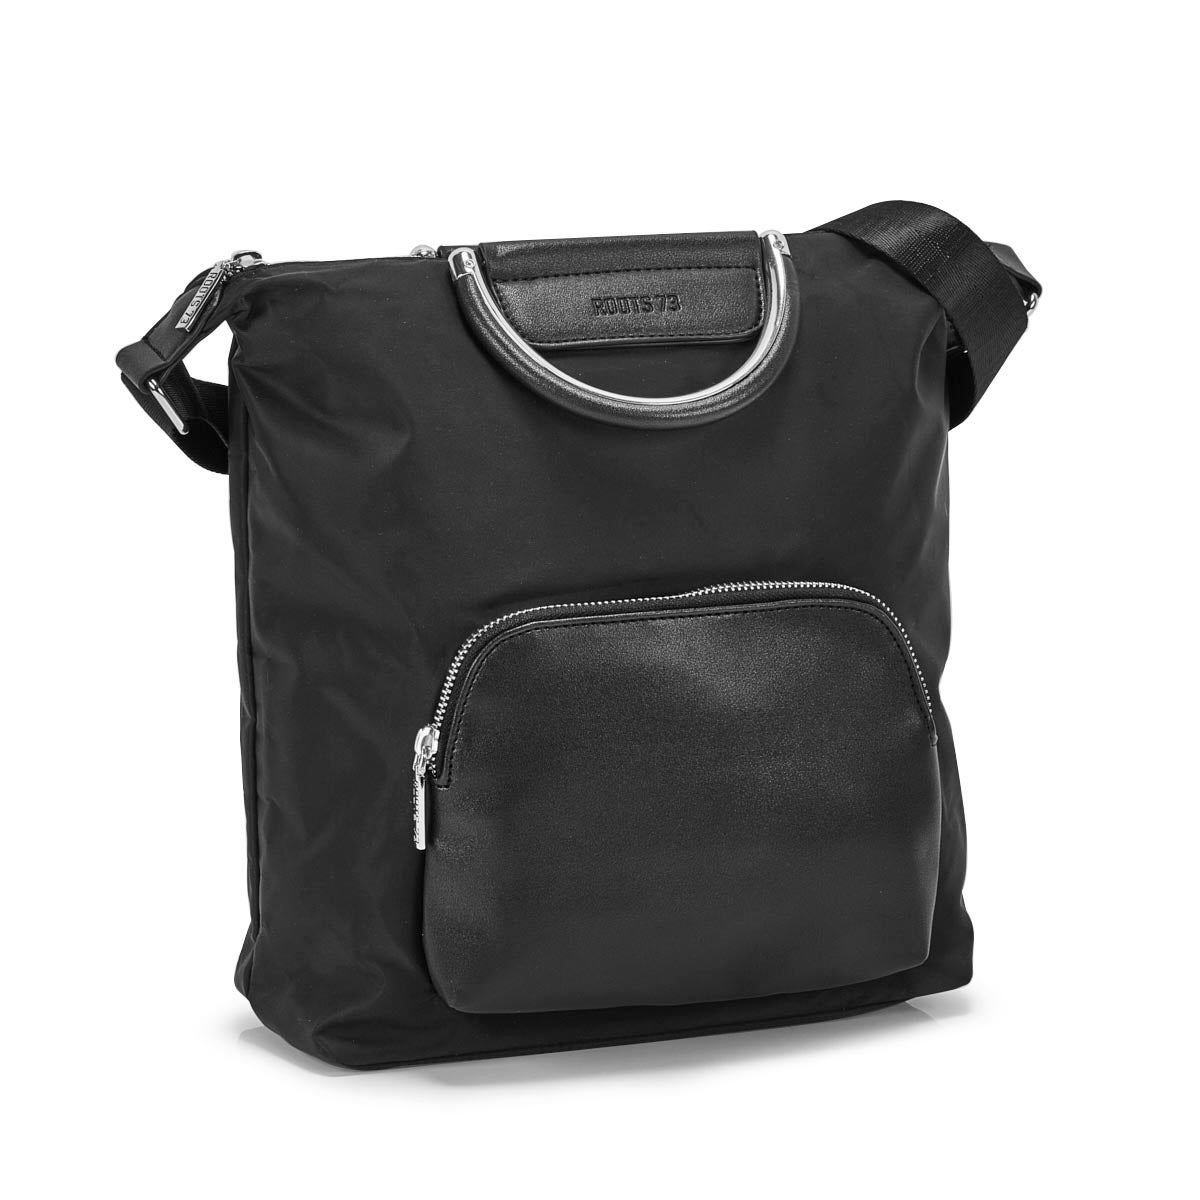 Lds Roots73 black 2 handles hobo bag